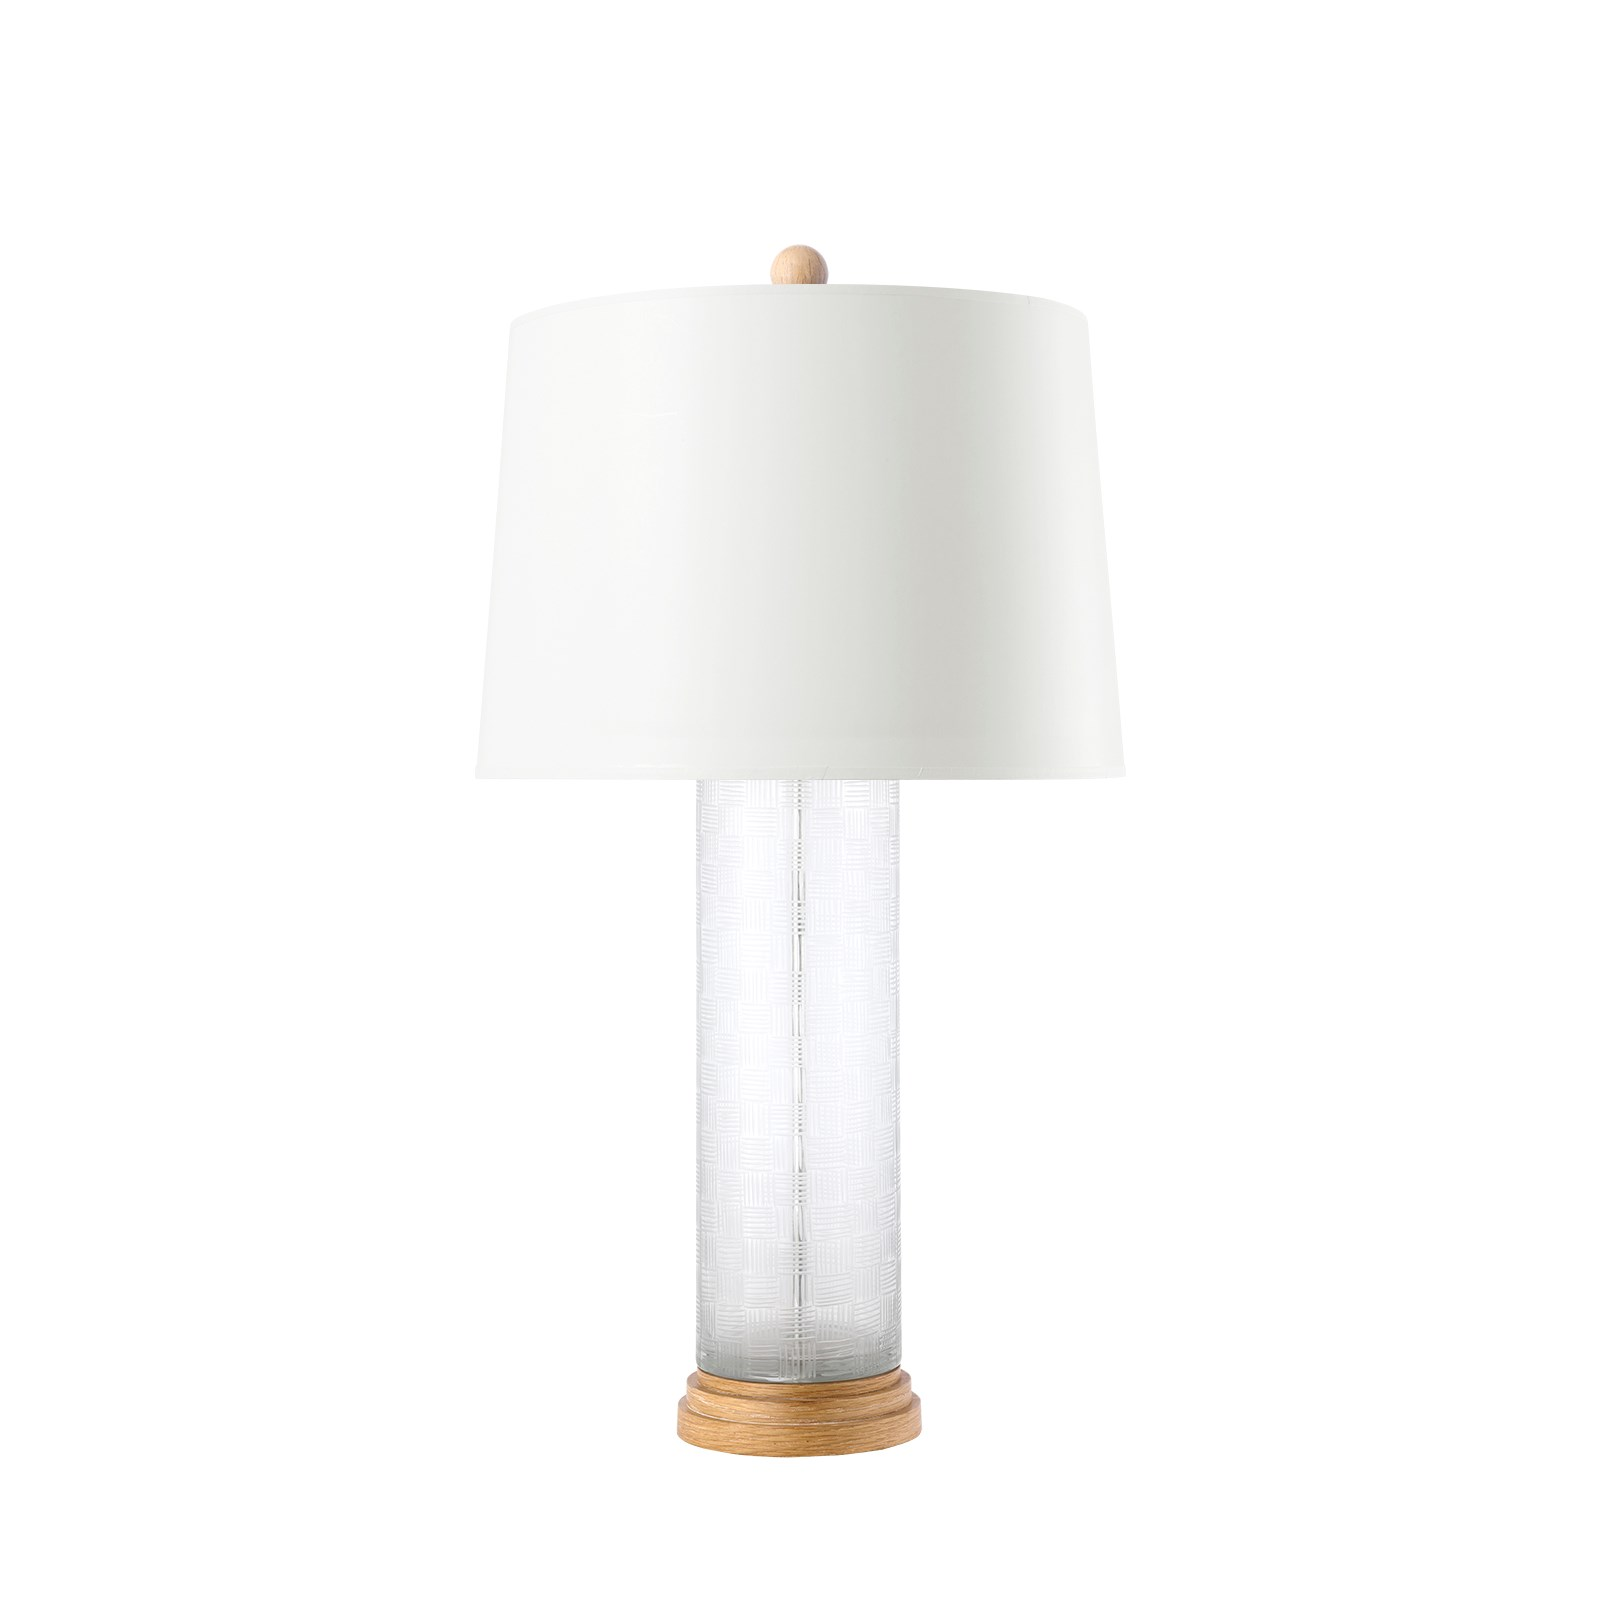 baccarat mille nuits clear xml lamp large ceiling